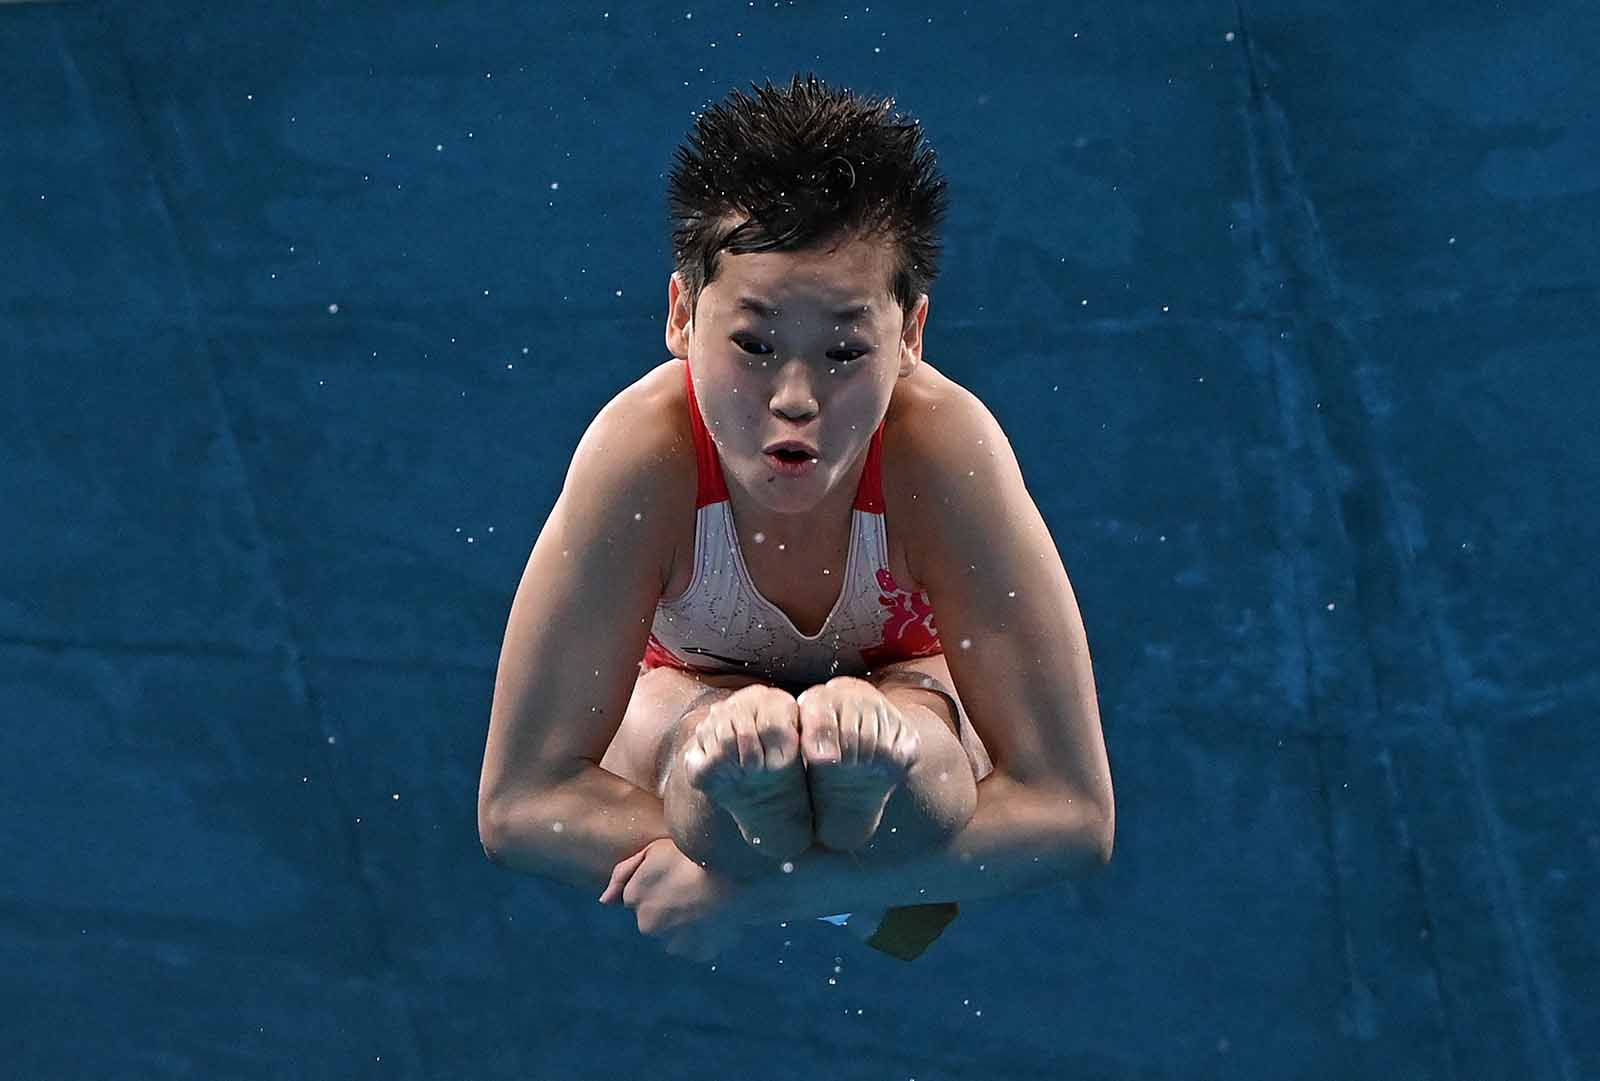 China's Quan Hongchan competes in the women's 10m platform diving final event on August 5.